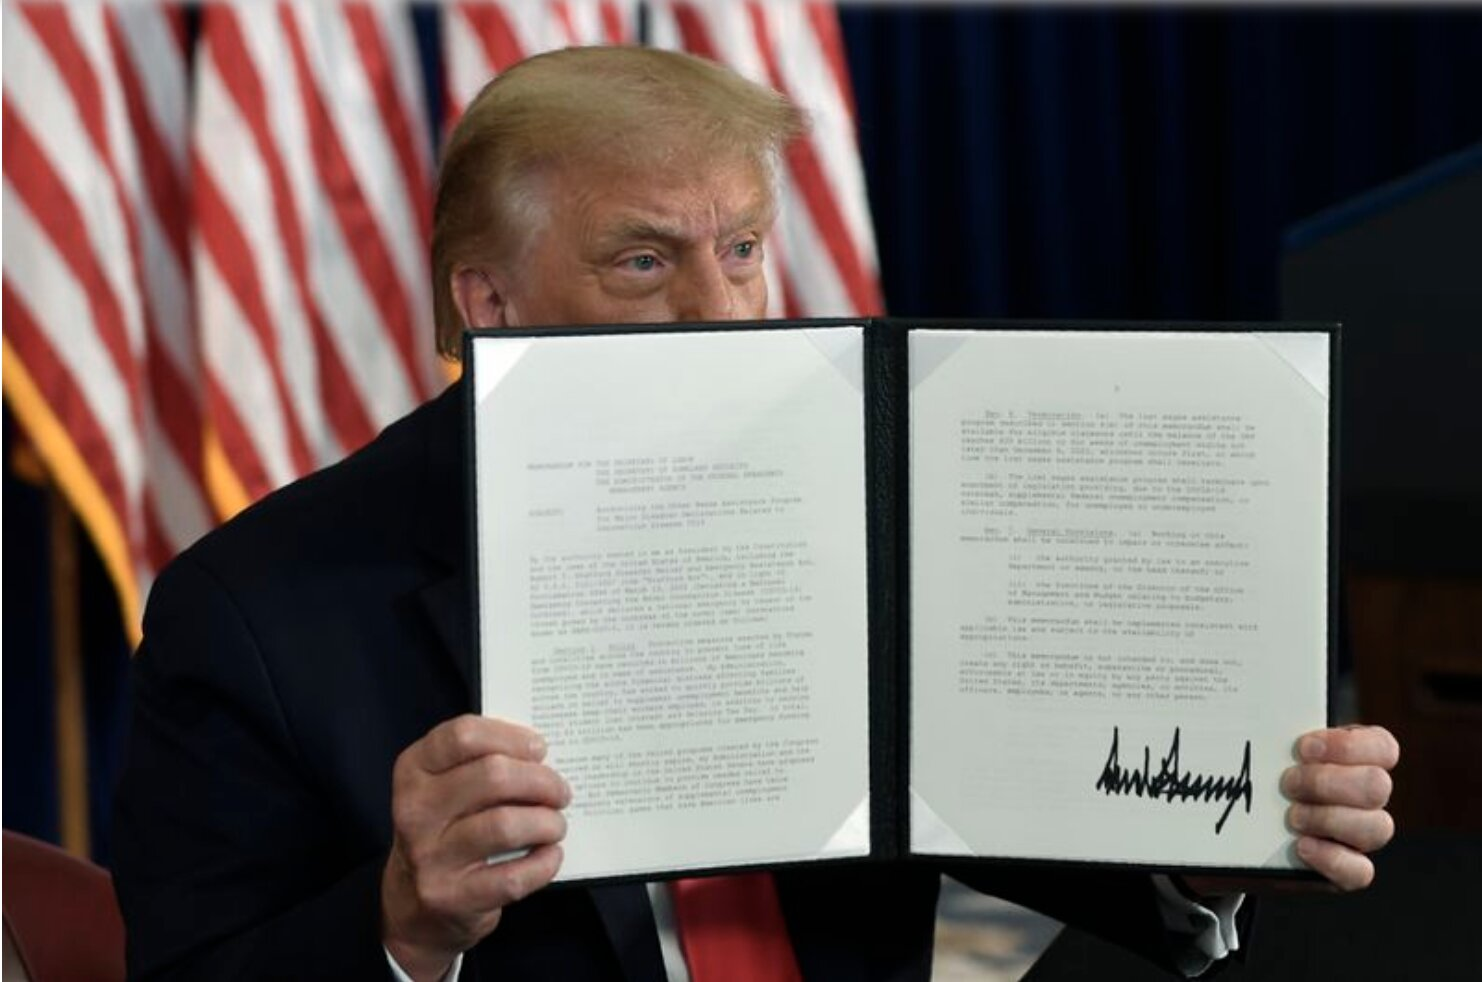 Trump signs executive orders after stimulus talks break down on Capitol Hill